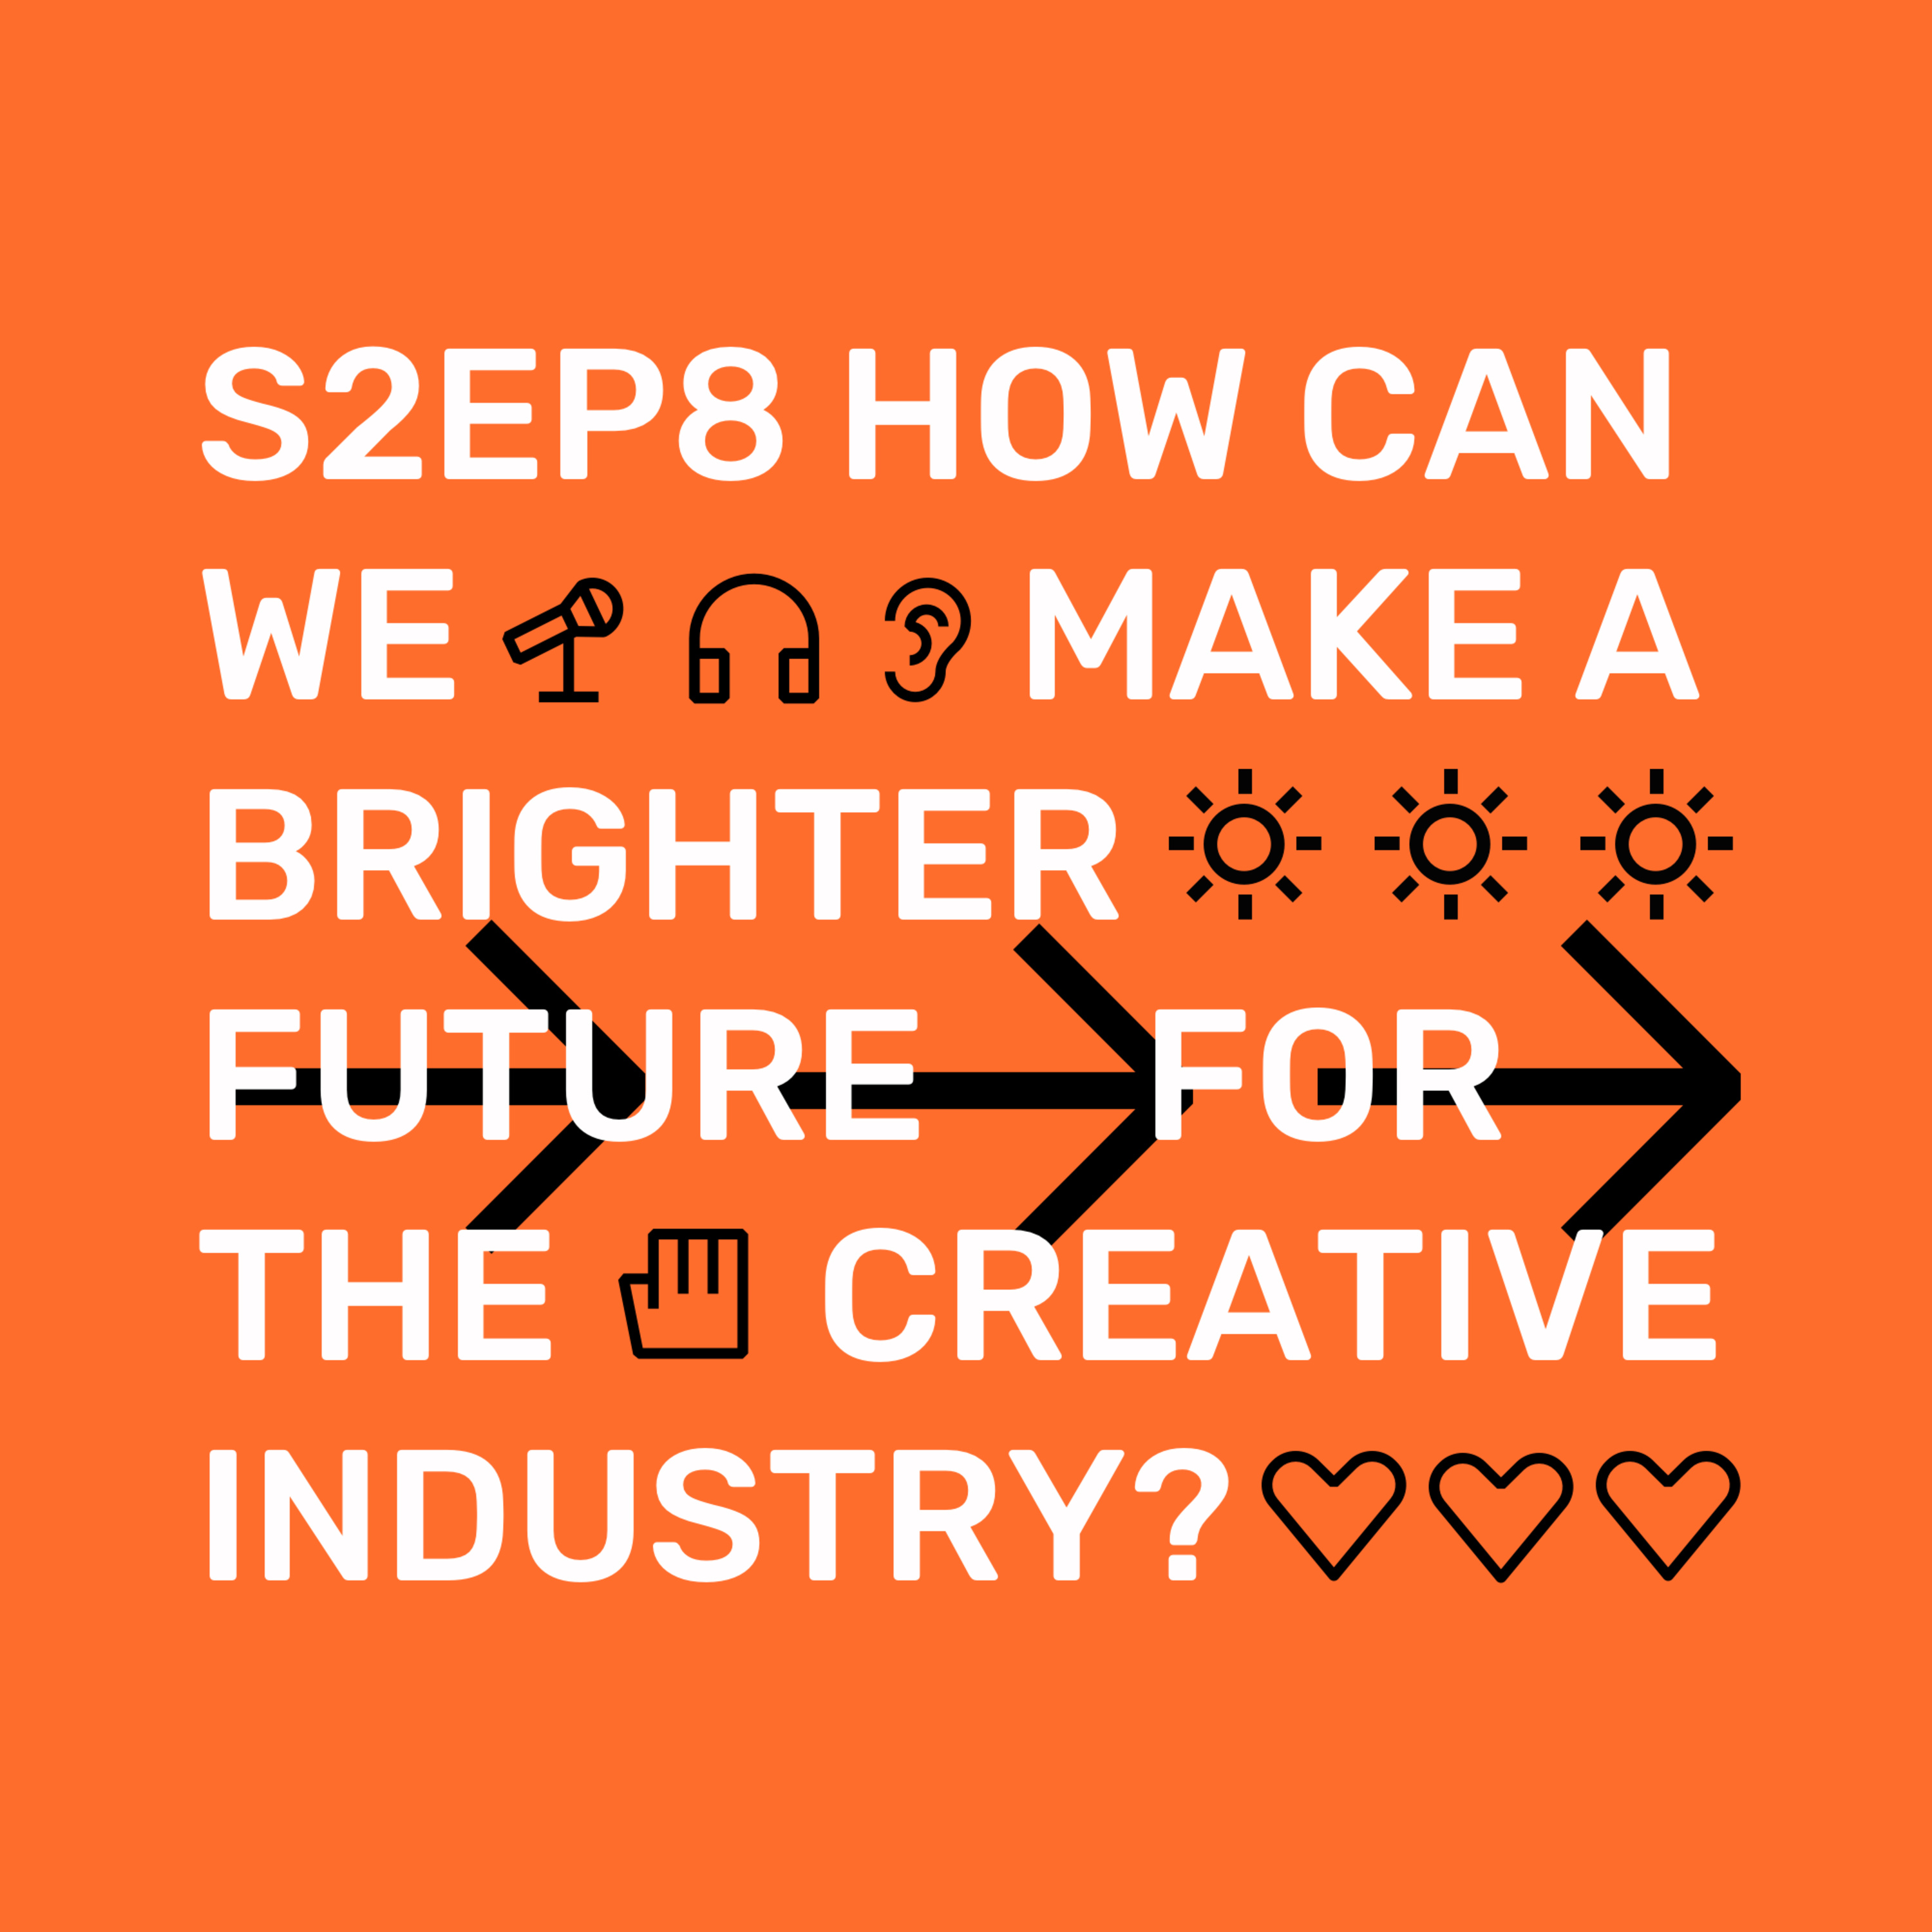 S2Ep8 How can we make a brighter future for the creative industry?